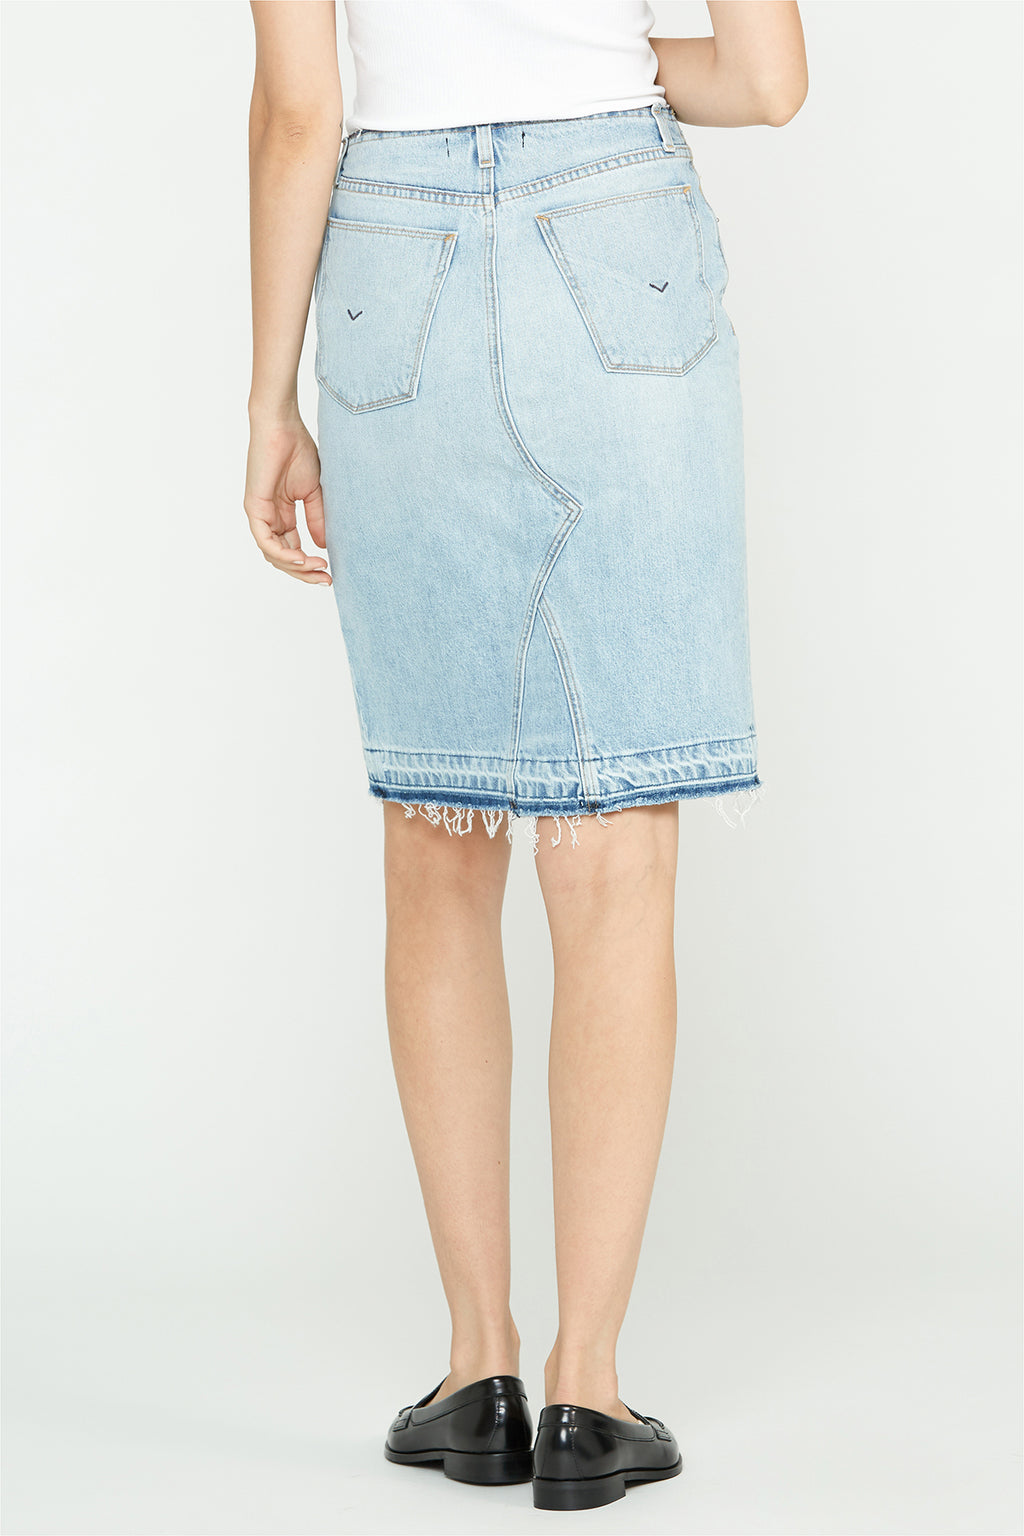 Sloane Baggy Denim Skirt - hudsonjeans